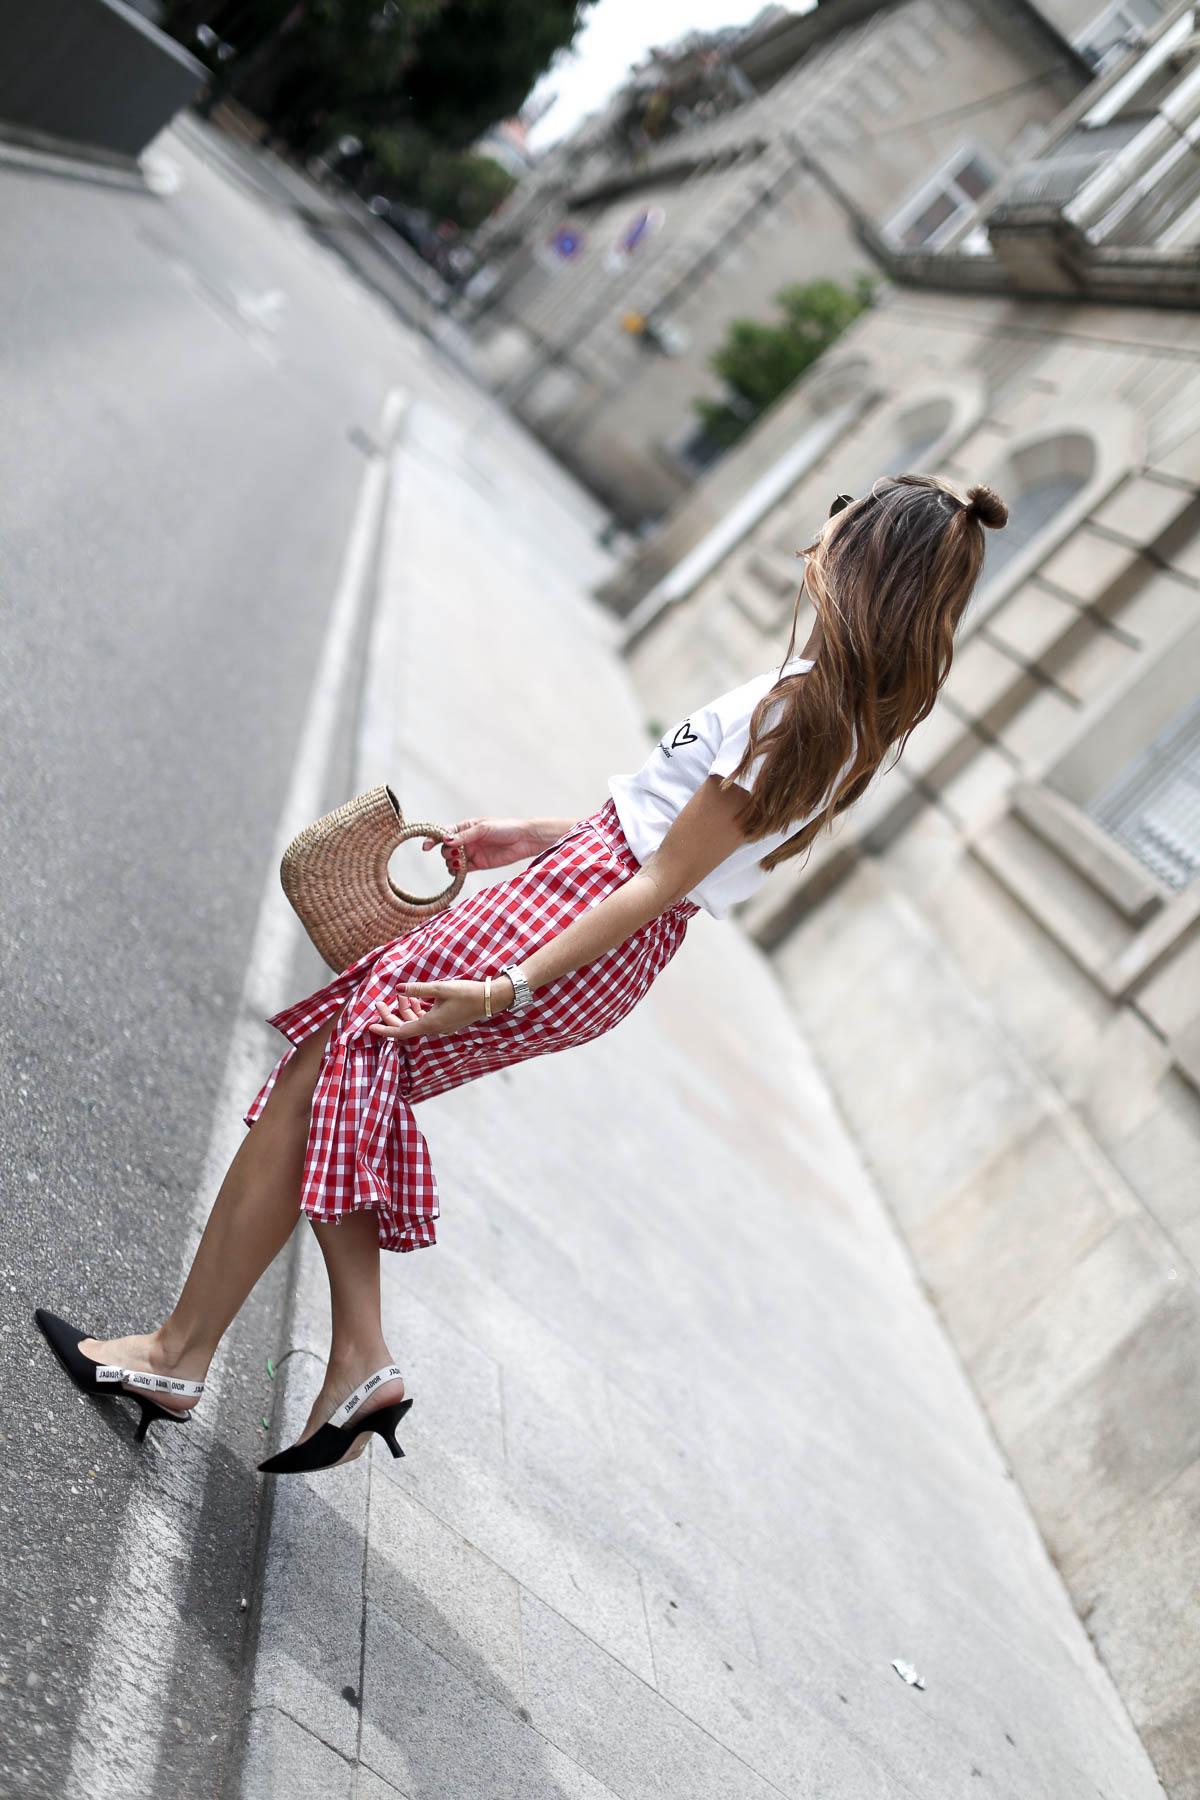 zara-dior-jadior-abicyclette-a-bicyclette-levis-style-estilo-moda-fashion-look-outfit-bartabac-streetstyle-blogger-blog-bartabacmode-7